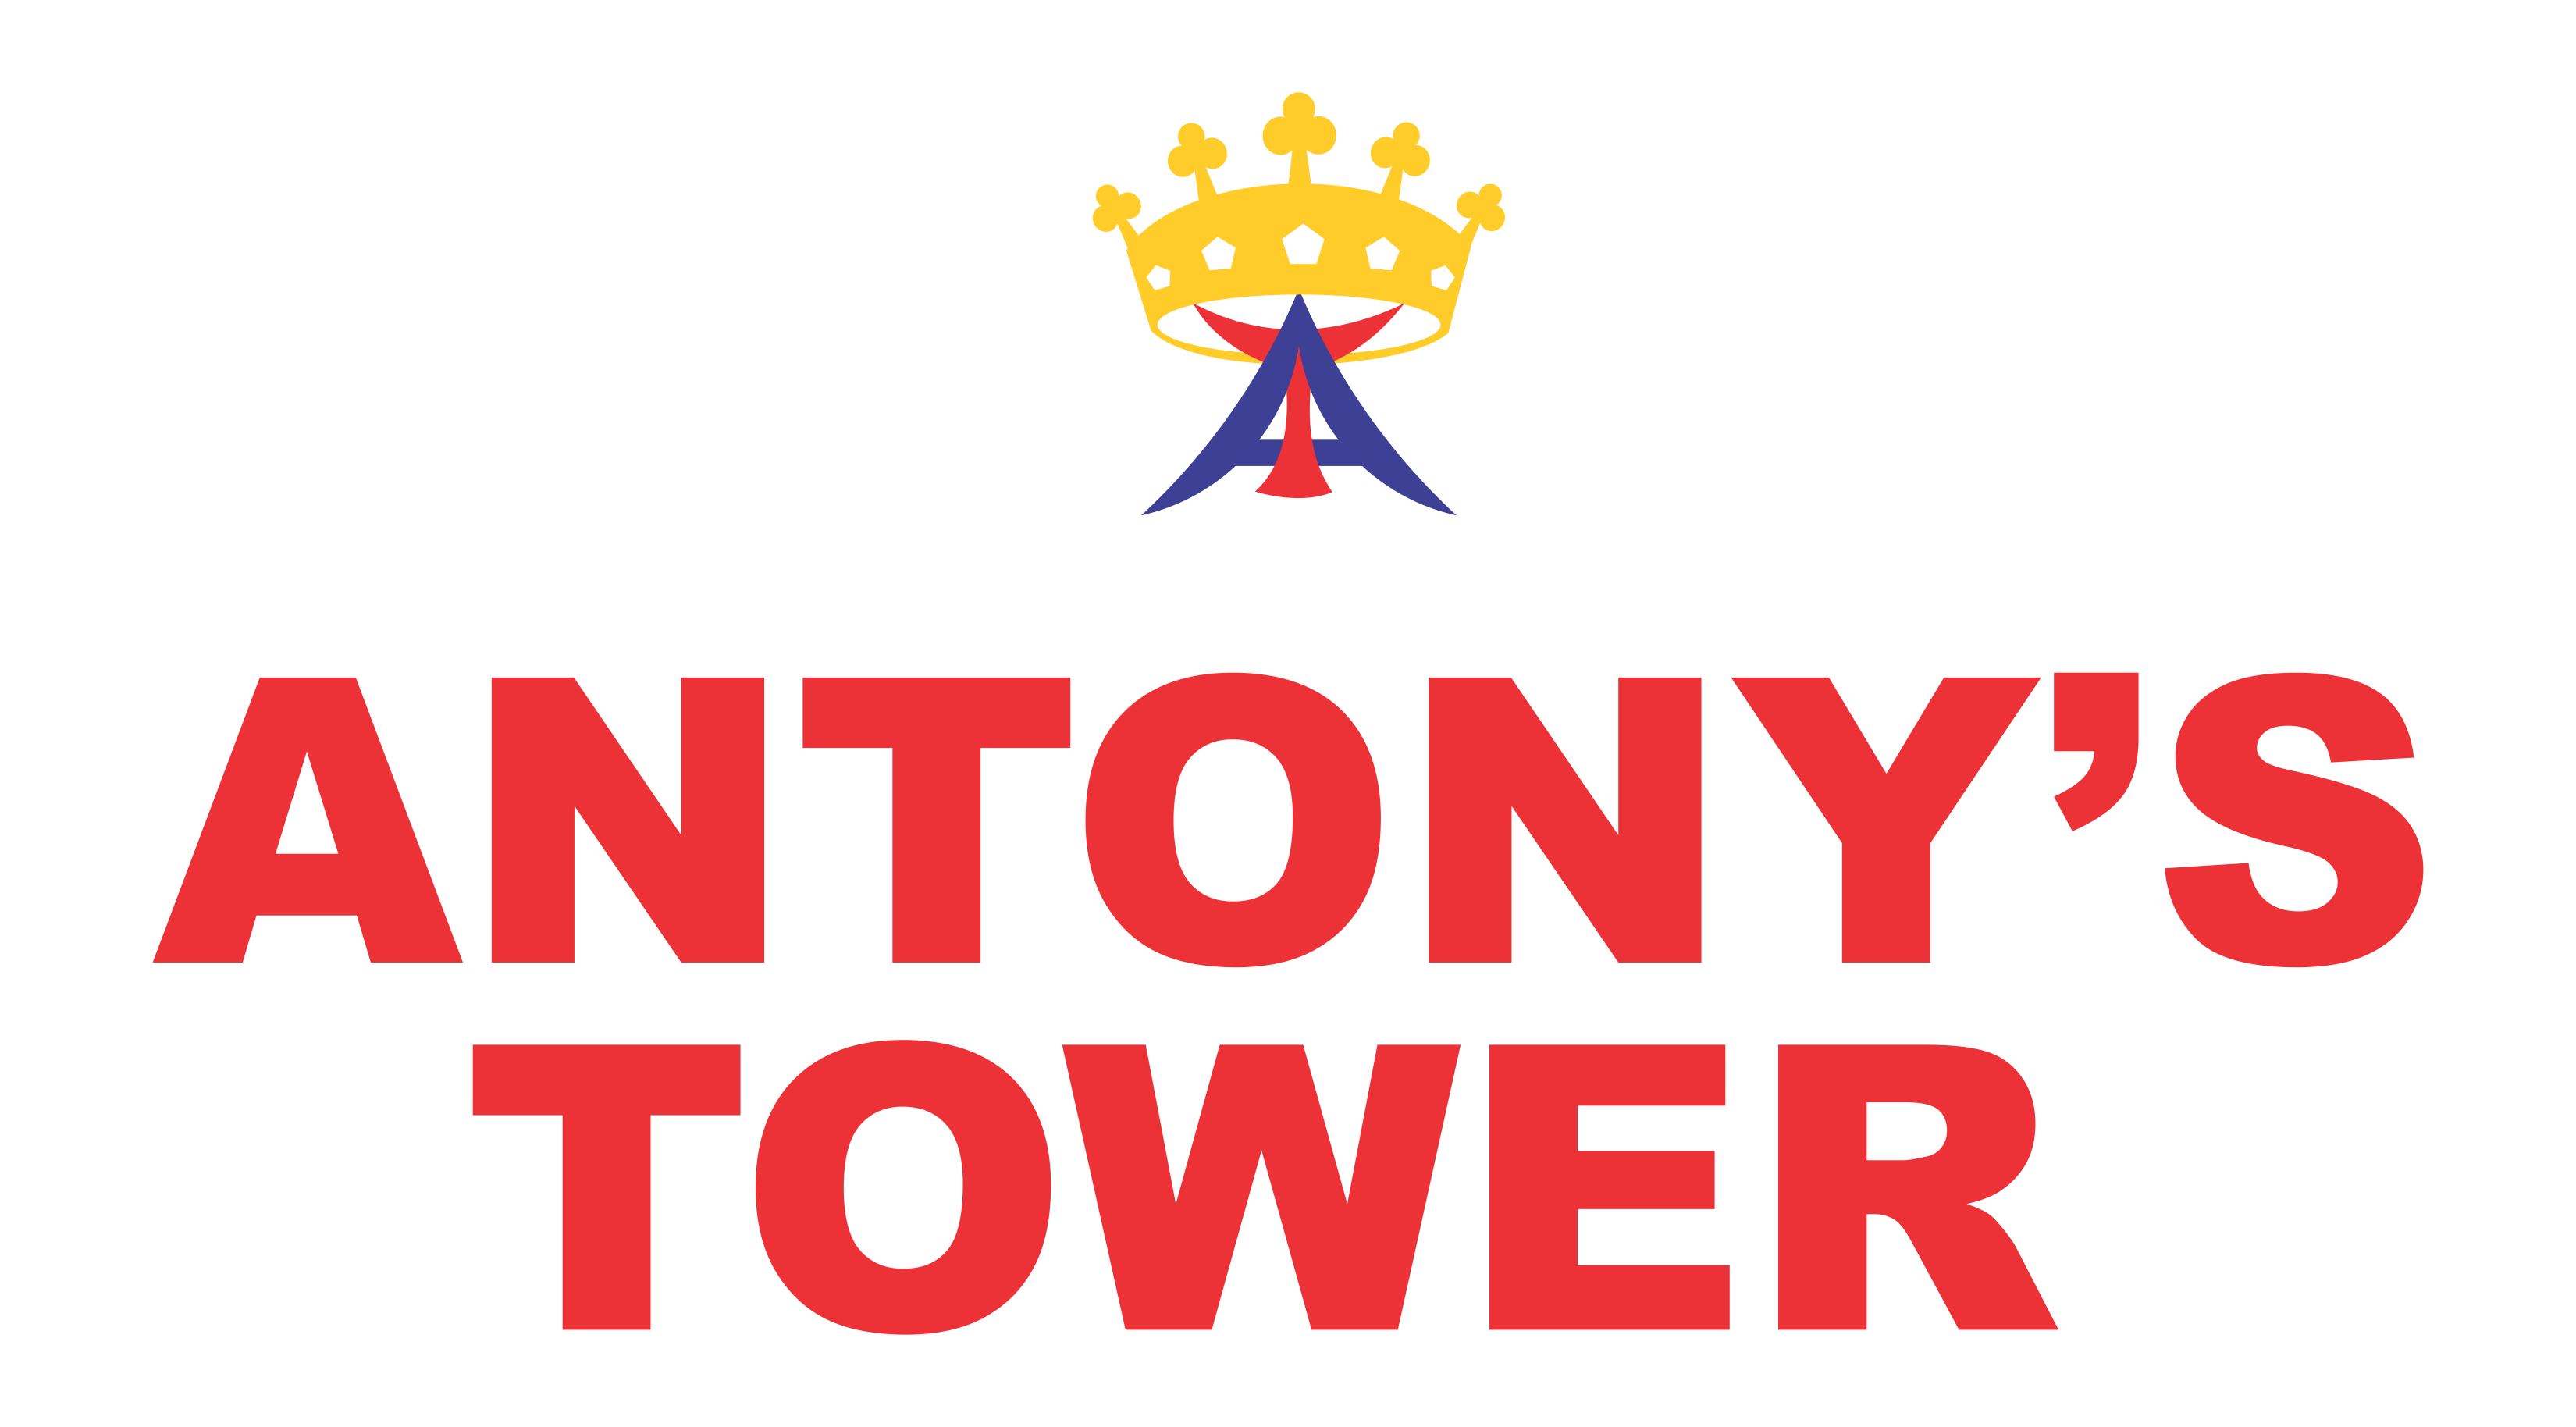 Antony's Tower logo